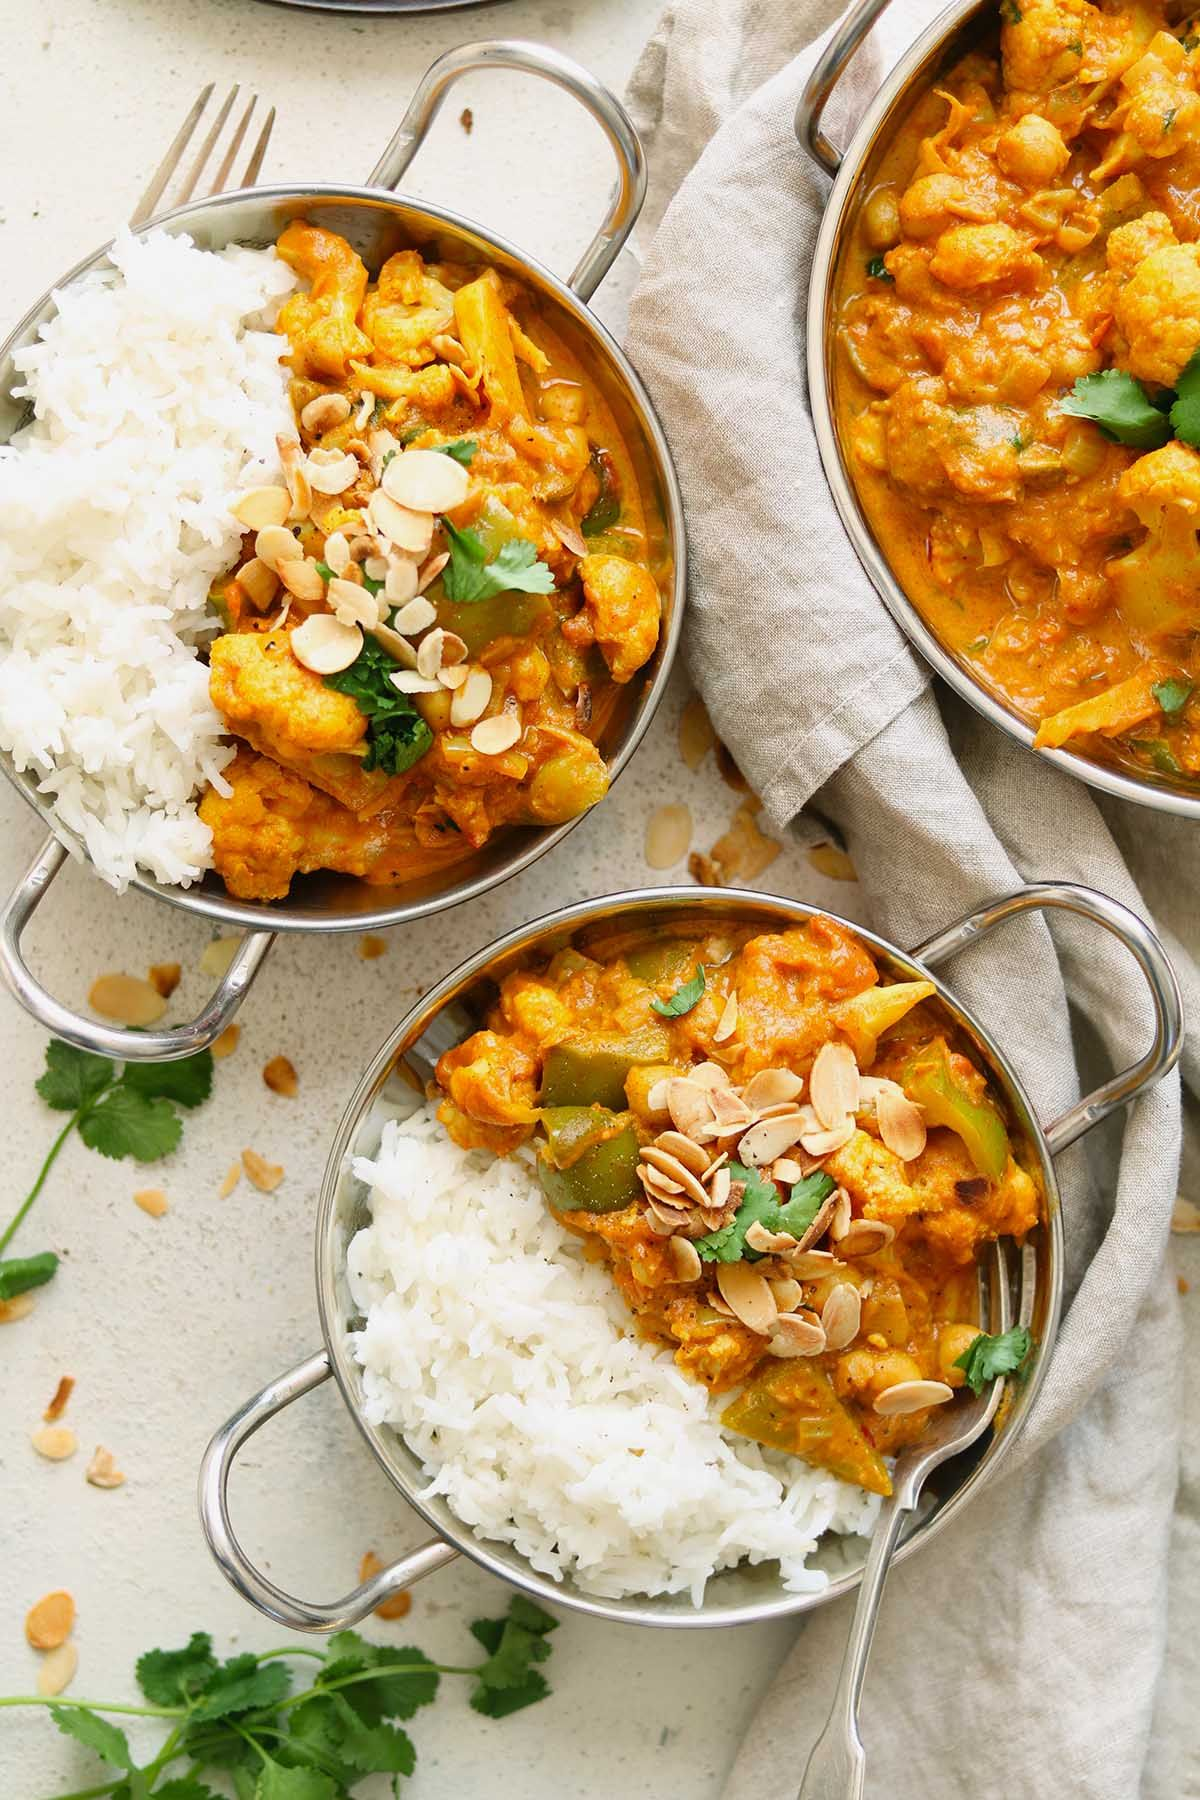 Cauliflower and Chickpea Curry - The Last Food Blog